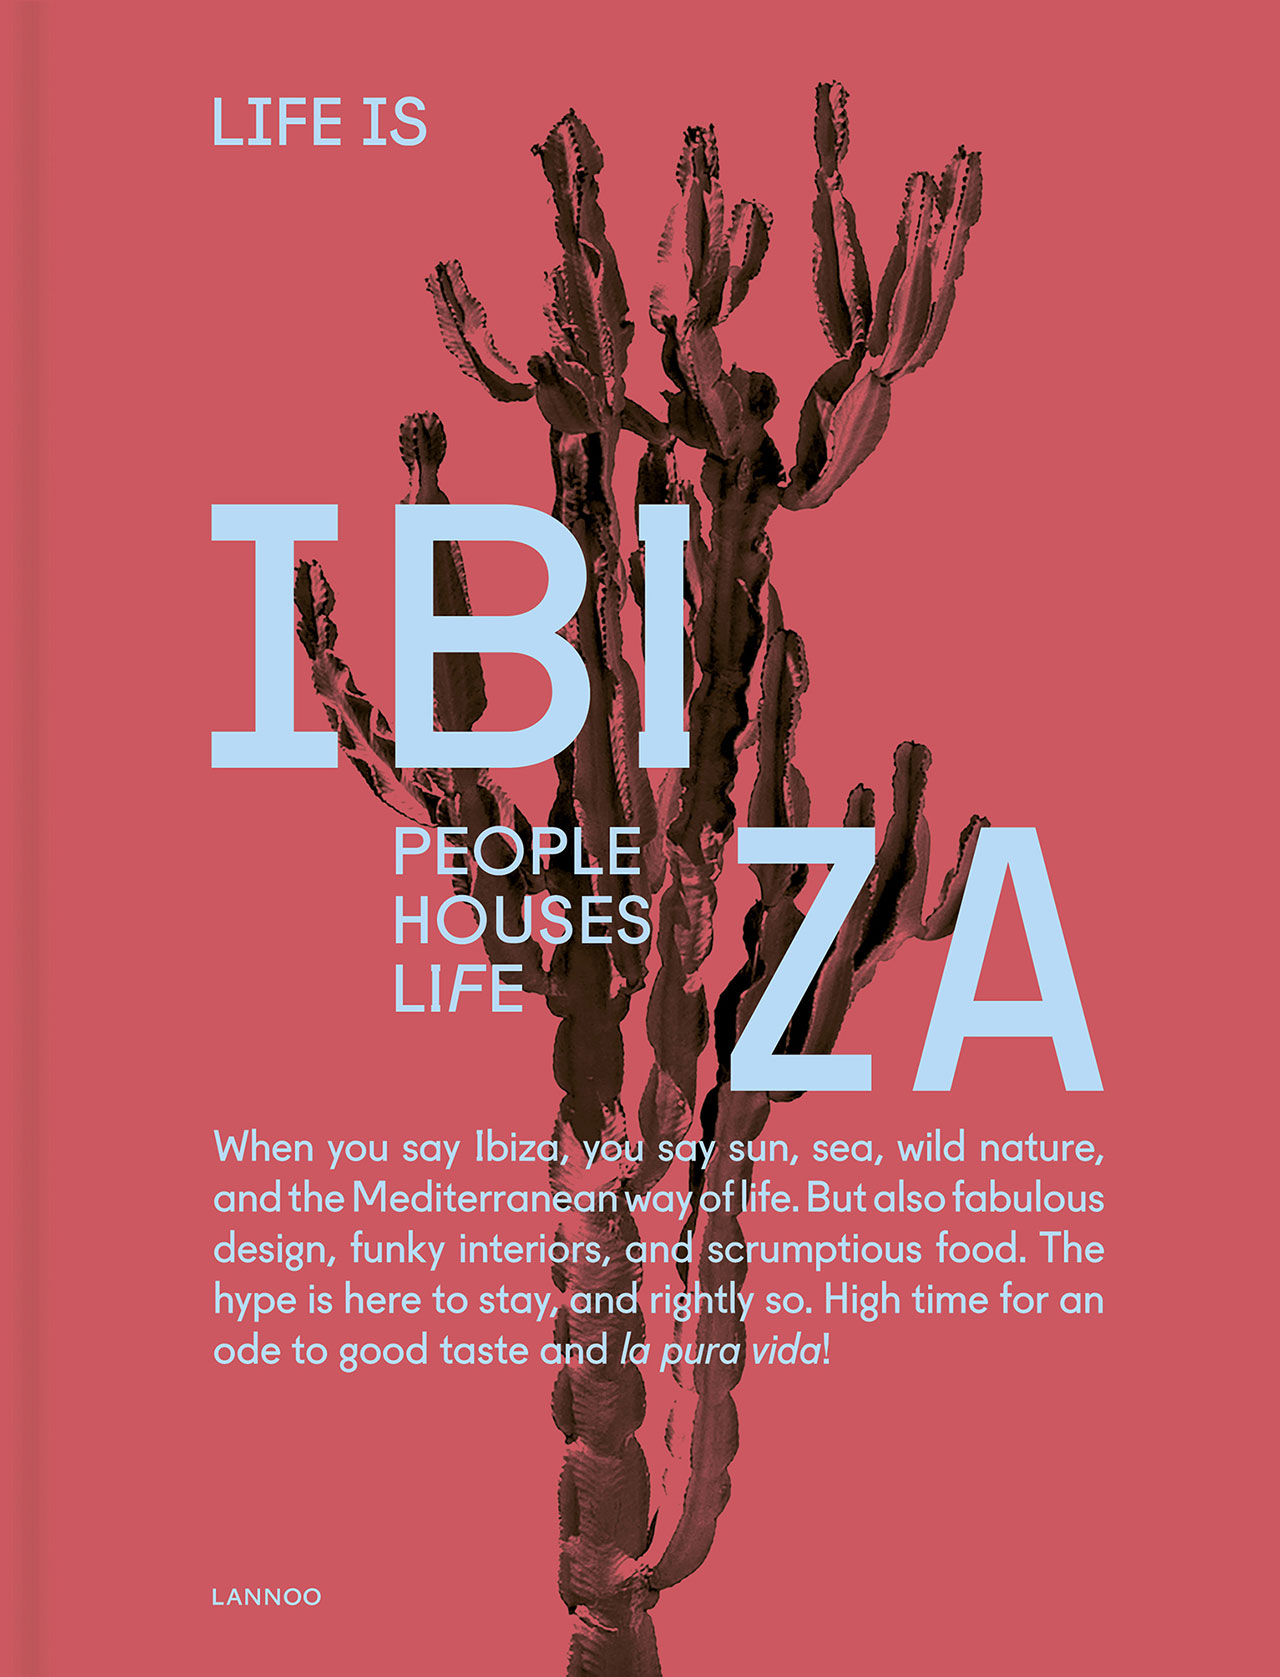 Life Is Ibiza : People Houses Life, Book Cover © Lannoo Publishers.